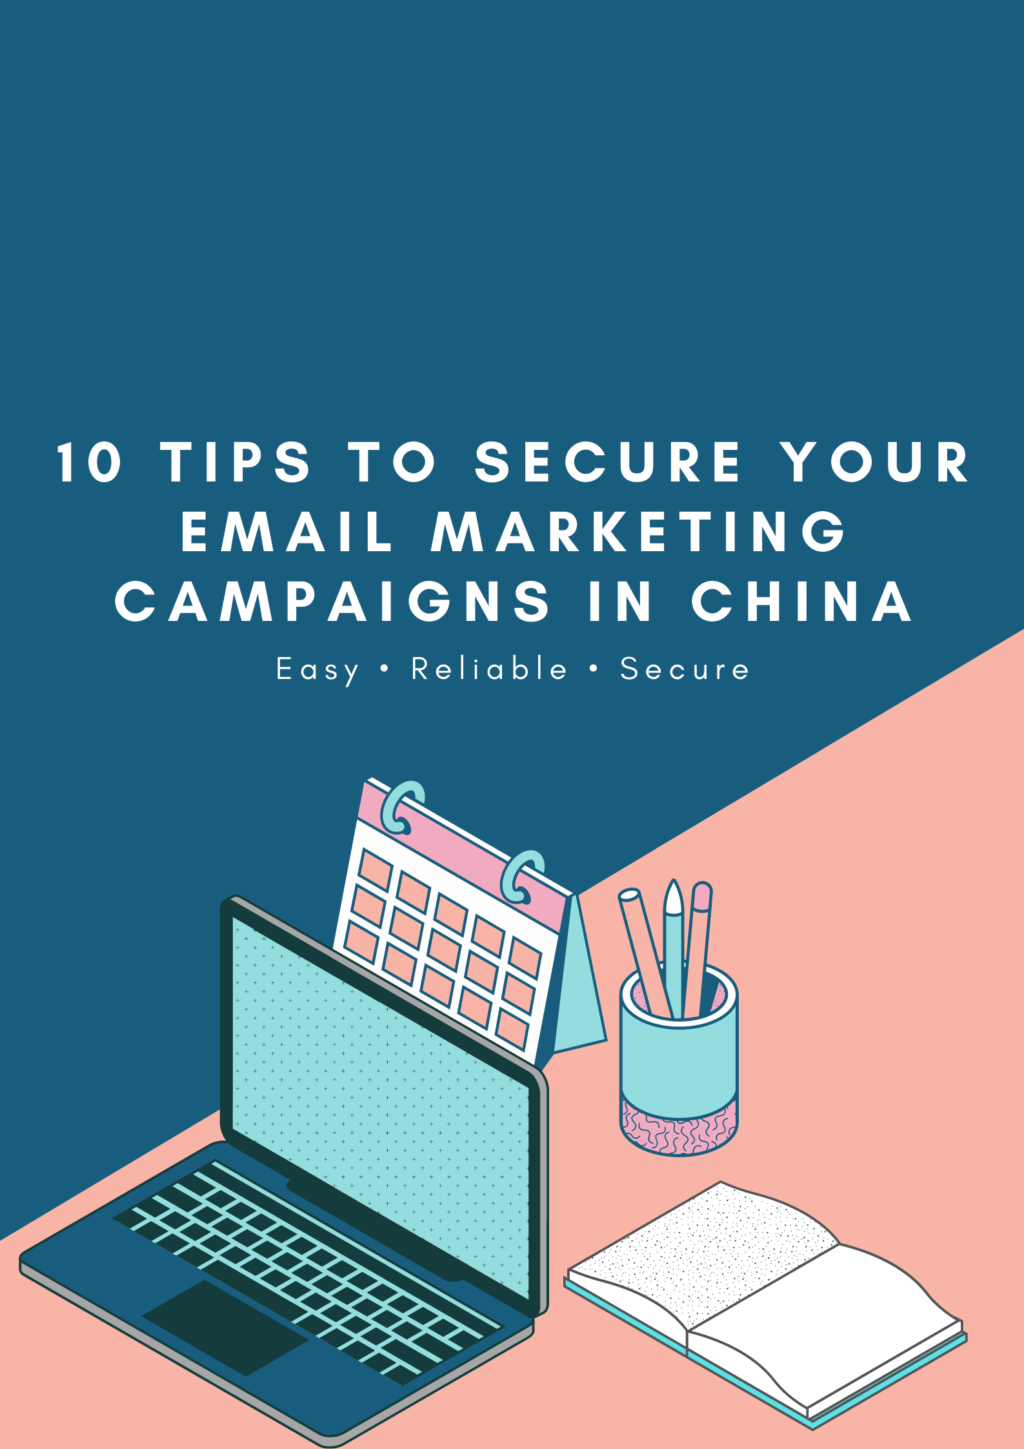 10 tips to secure your email marketing campaigns in China